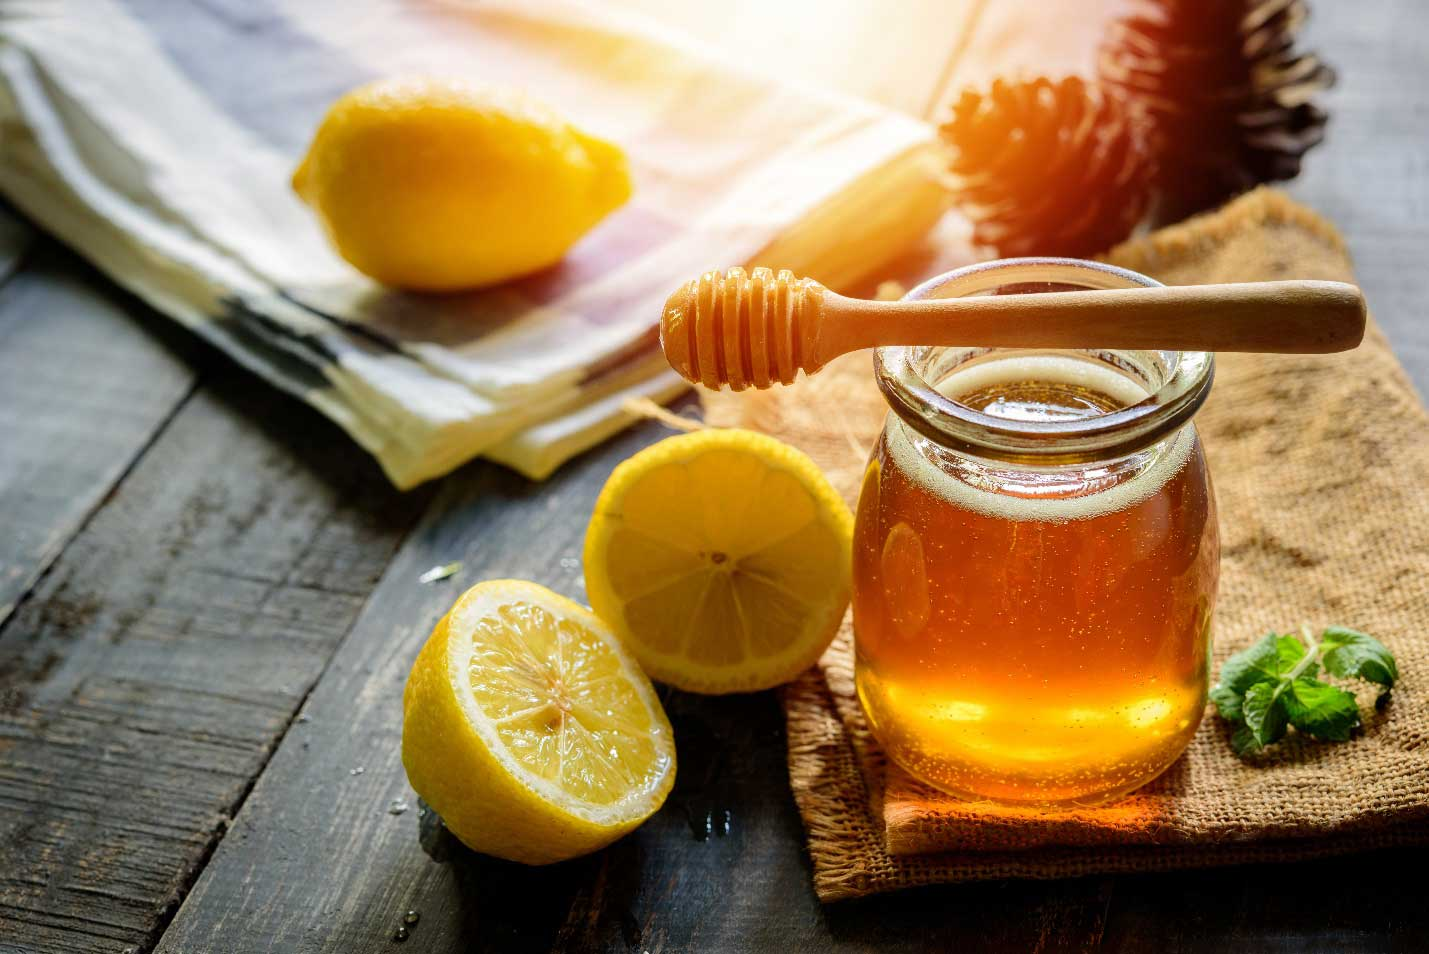 Lemon and Honey for Anxiety